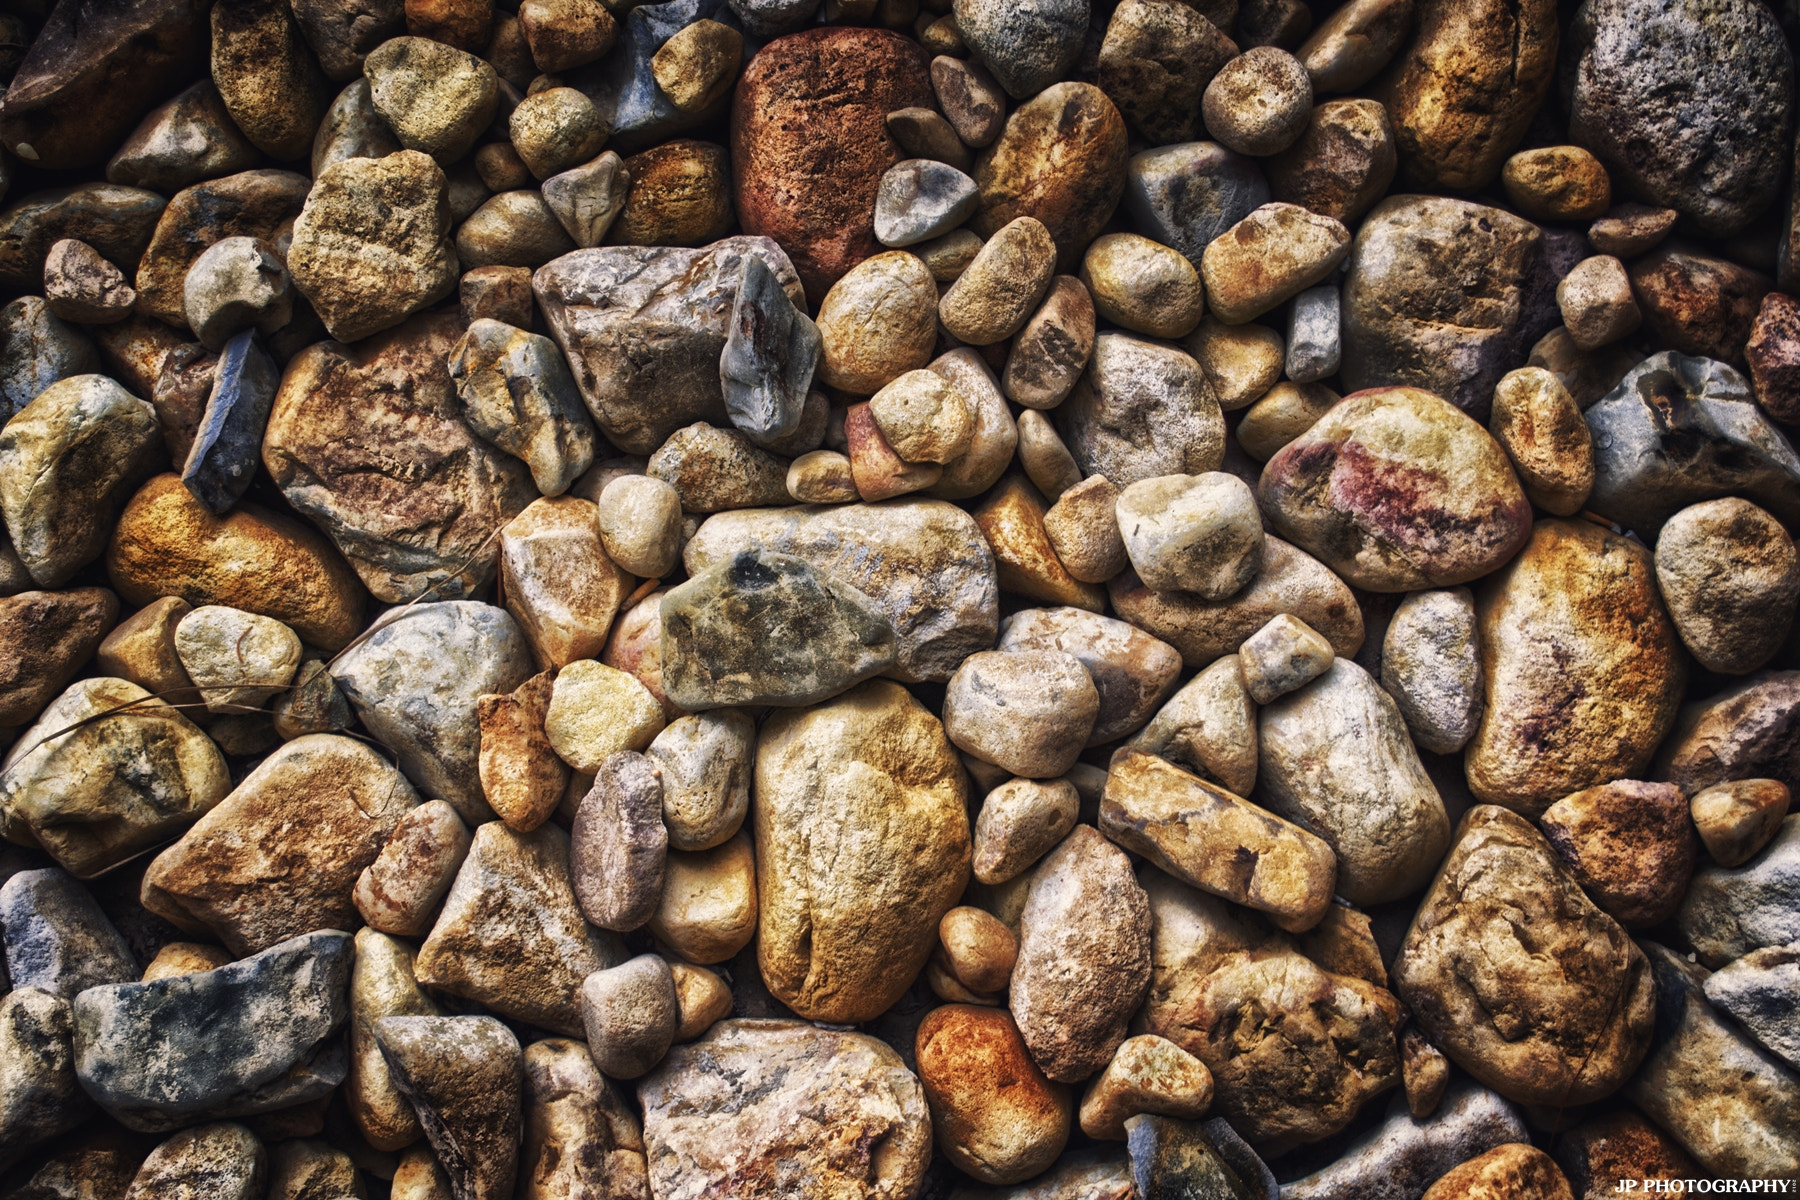 Photograph The Stones by Jackson Pang on 500px